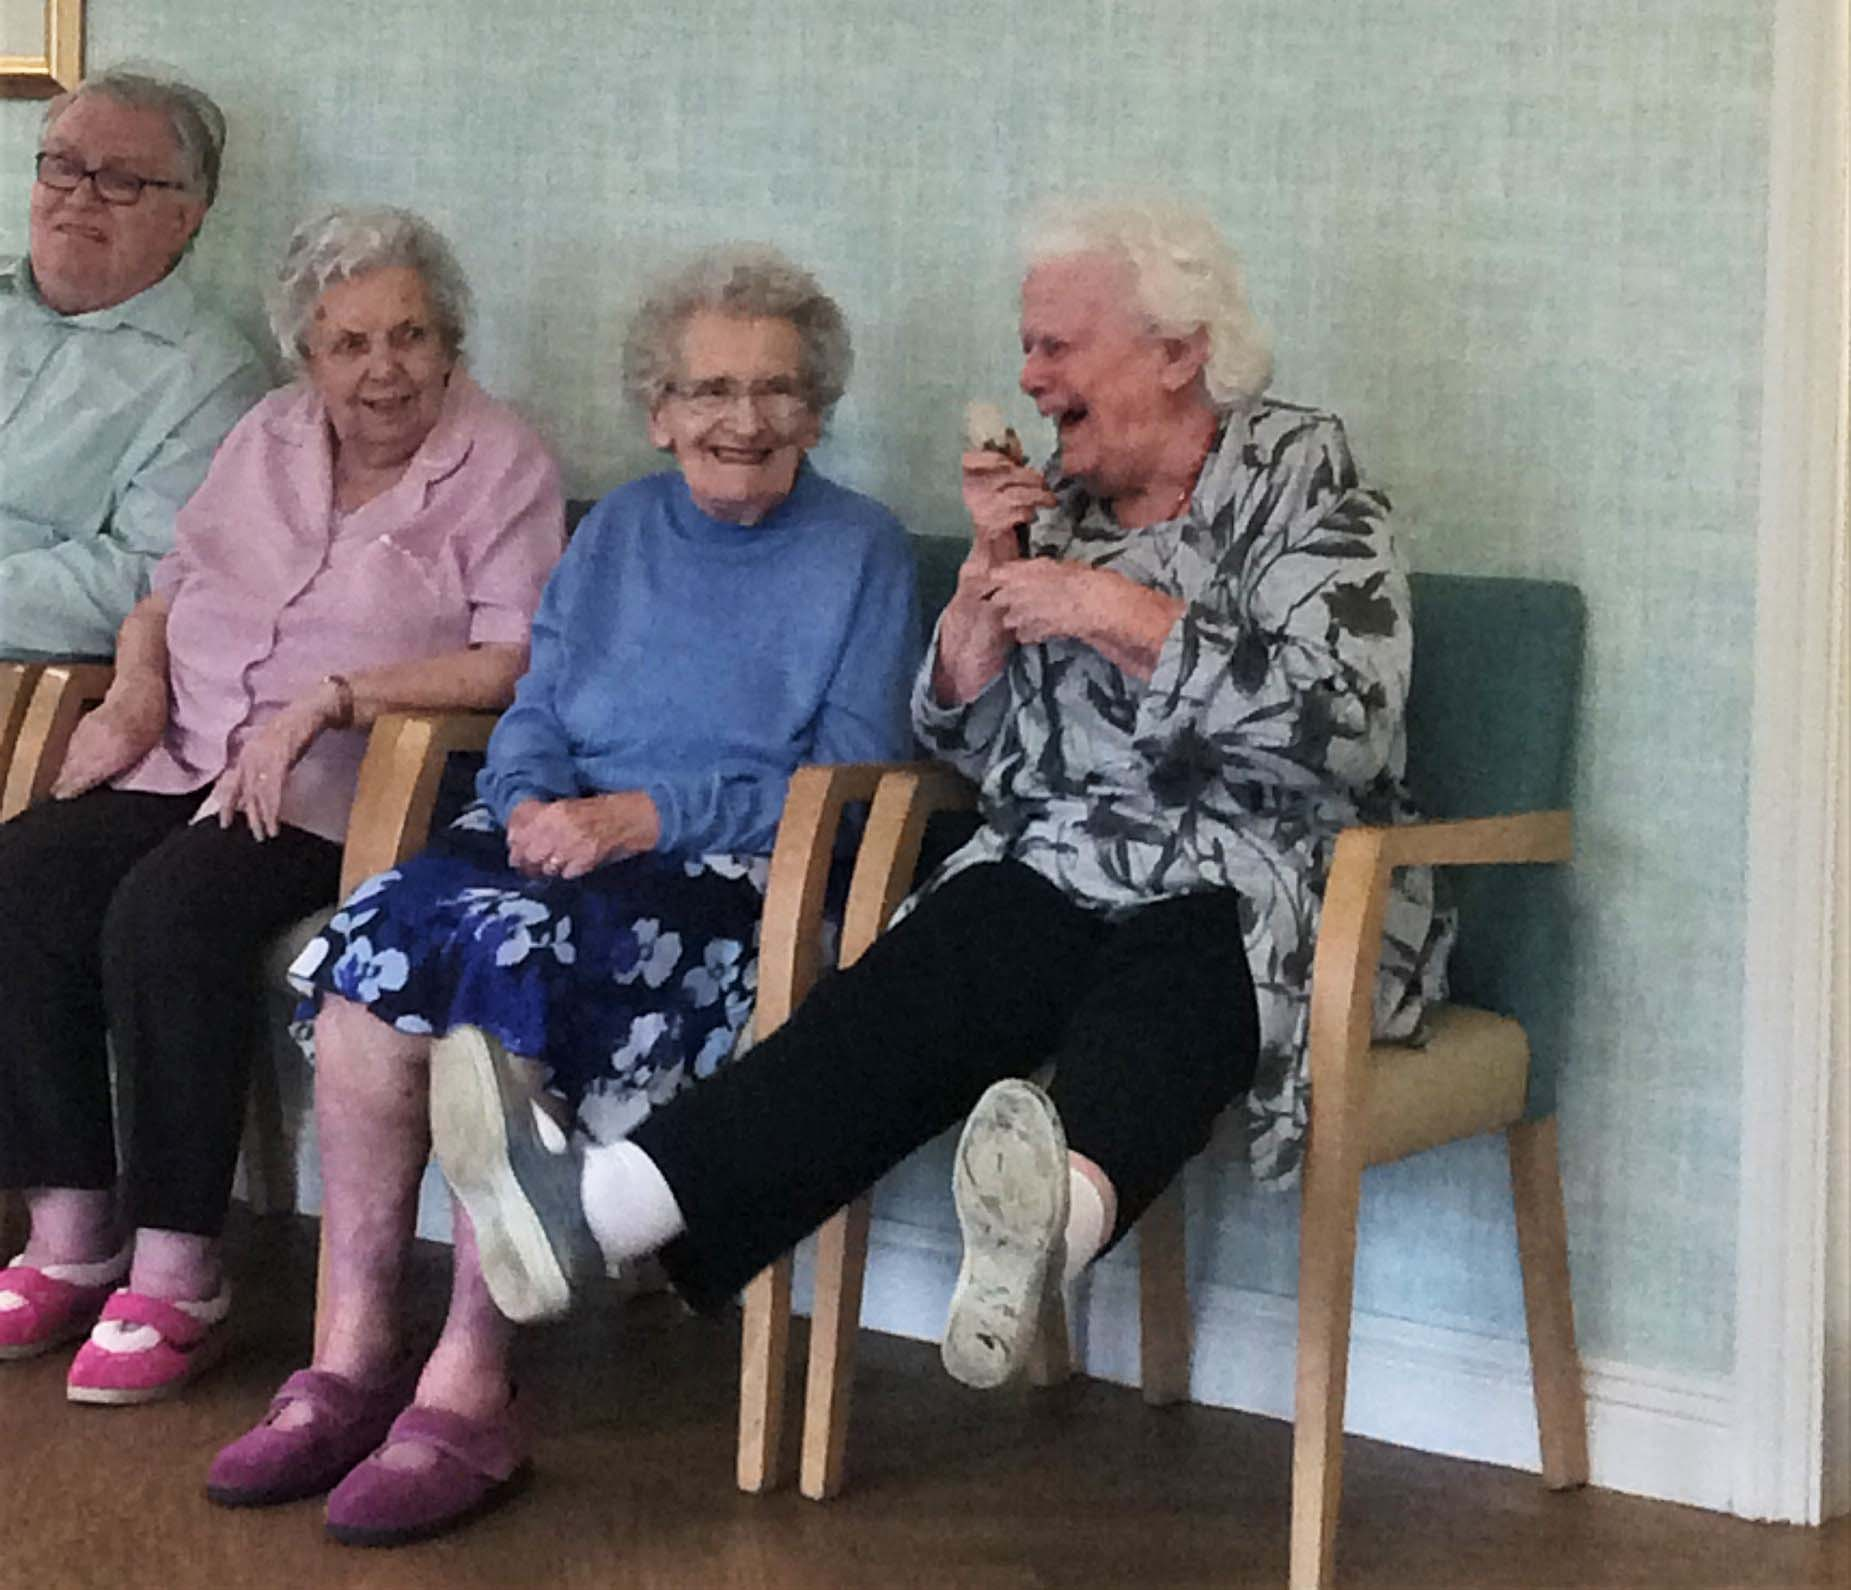 Bamfield Lodge Care Home has got the giggles!